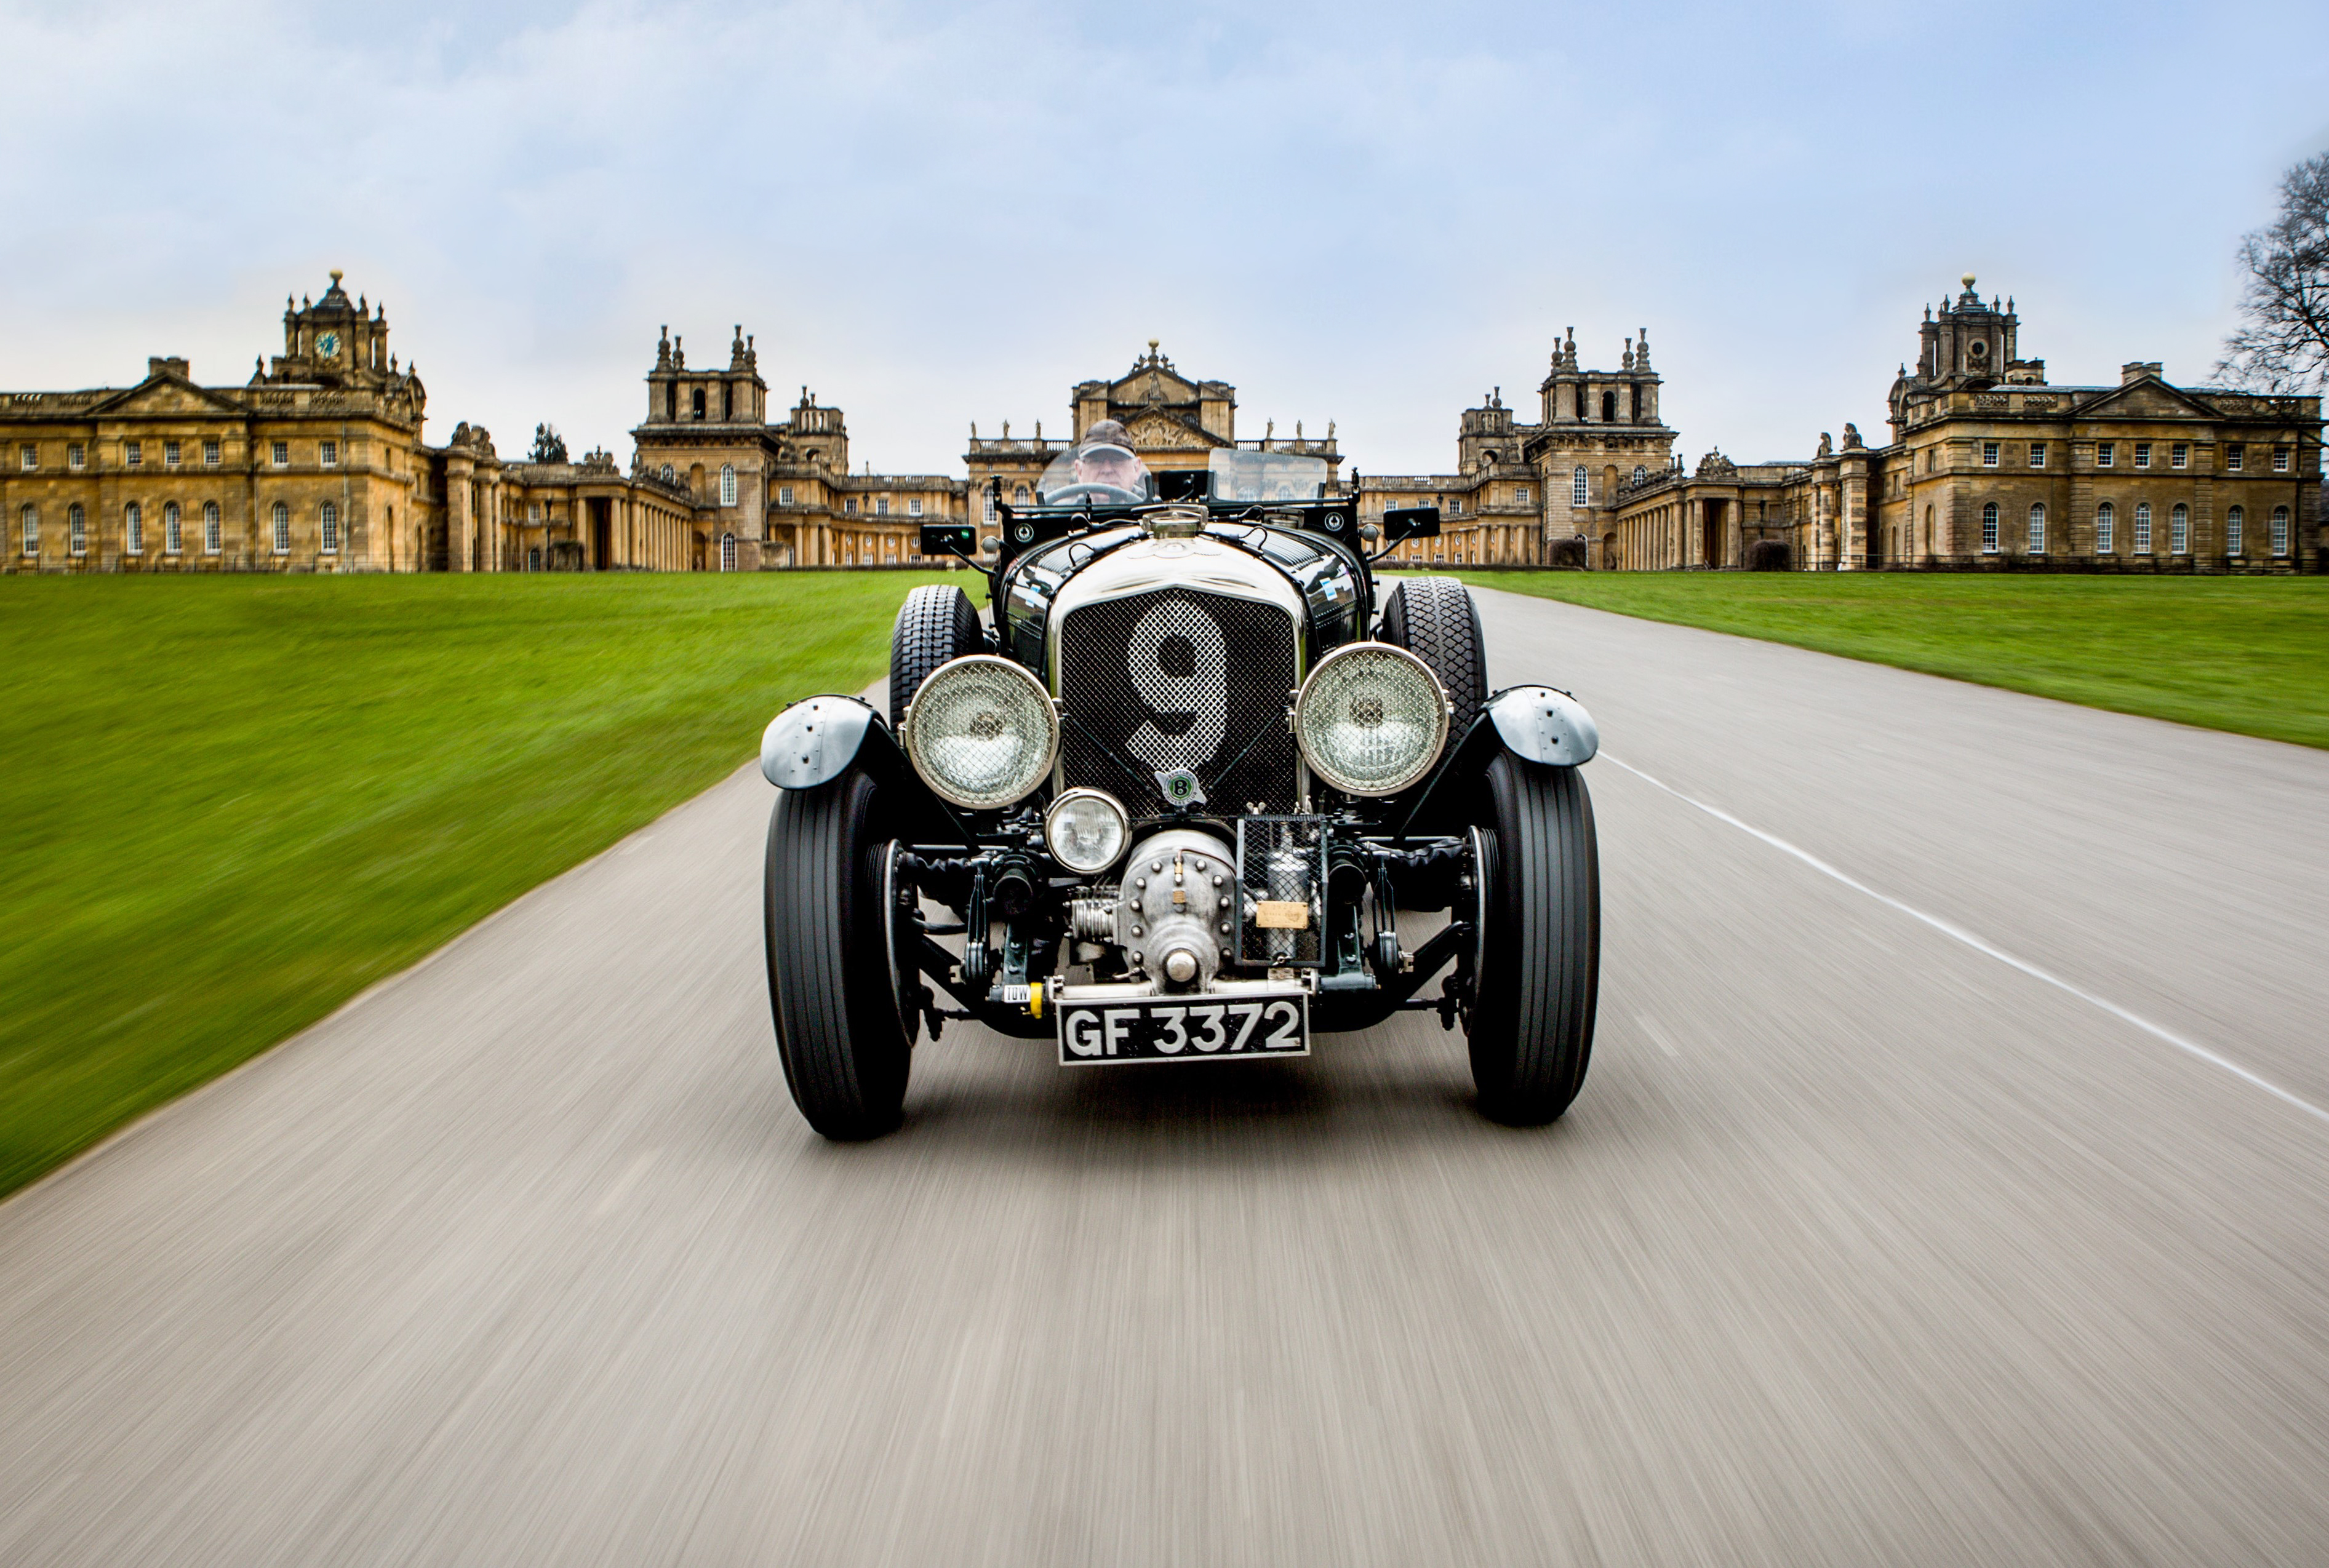 Bentley at Blenheim Palace